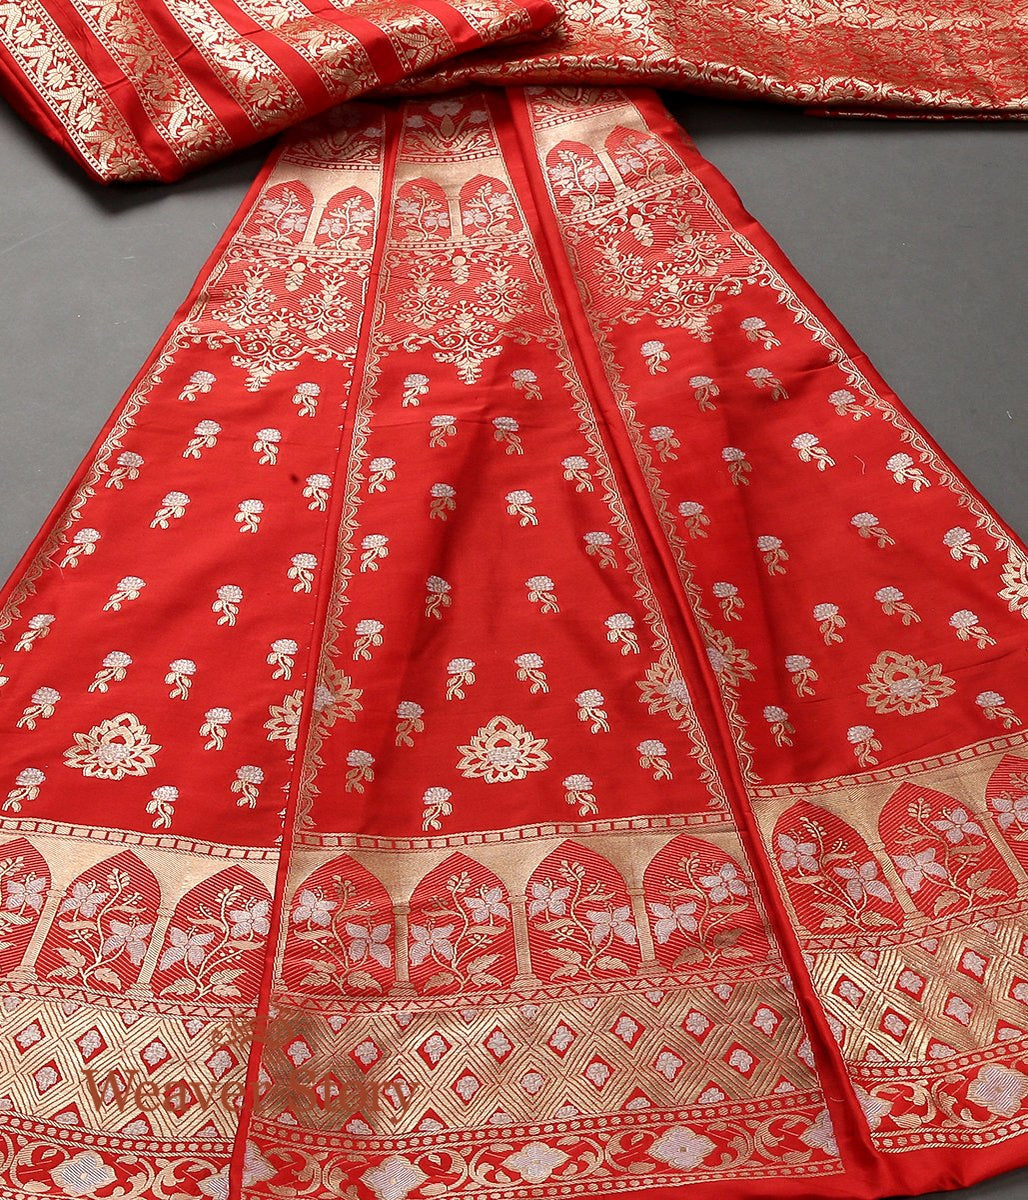 Handwoven Red Kadhwa Banarasi Lehenga with Meenakari